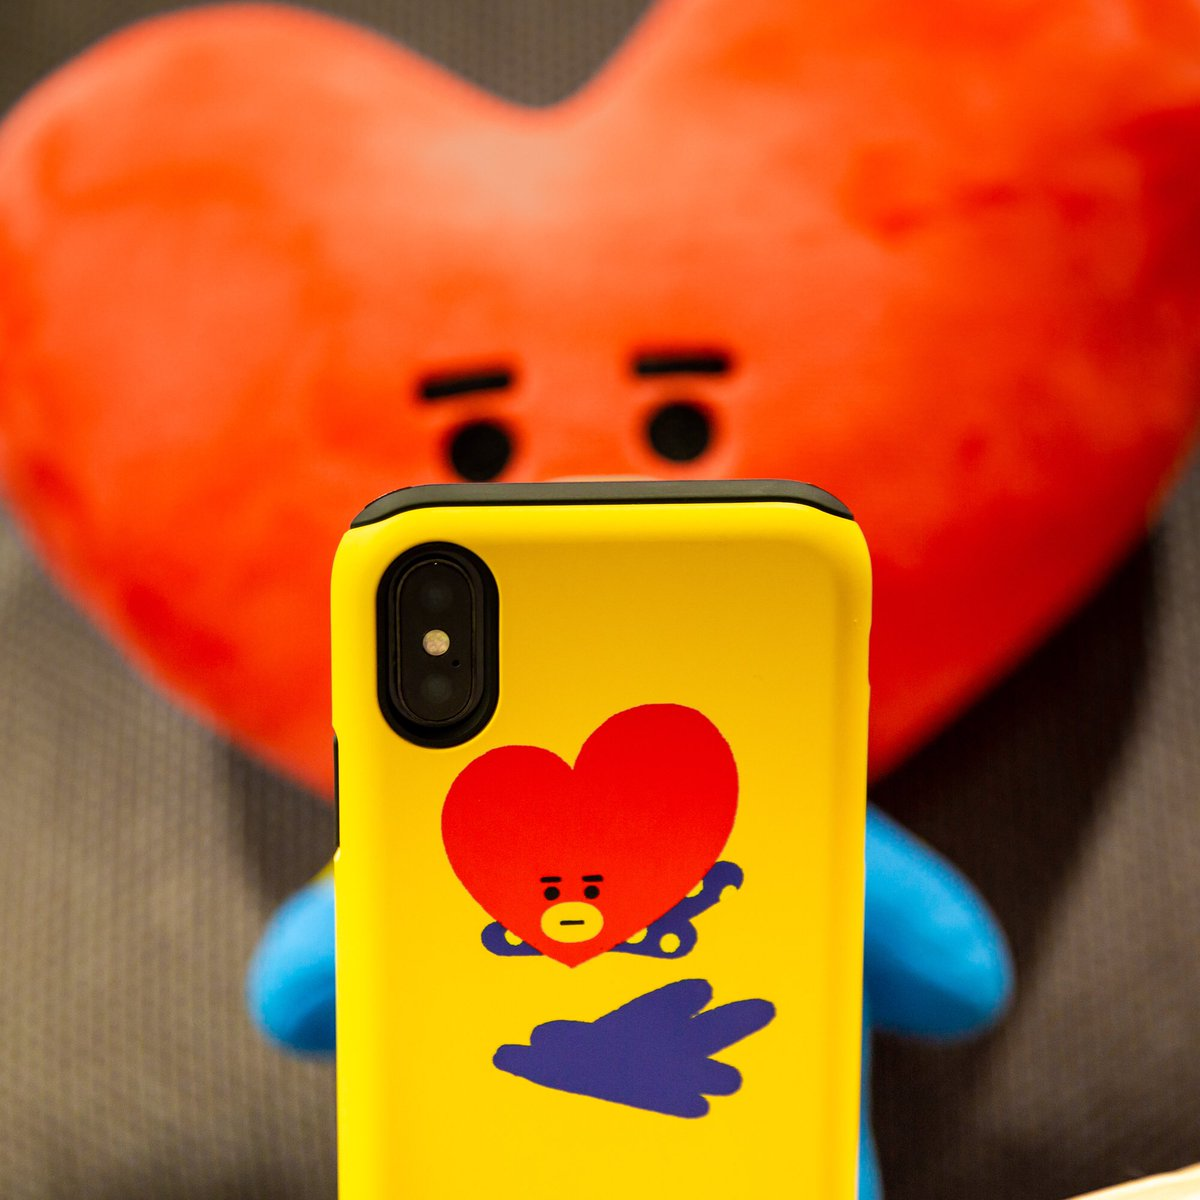 Should #TATA take it?😲 #COOKY #Phonecall #BT21